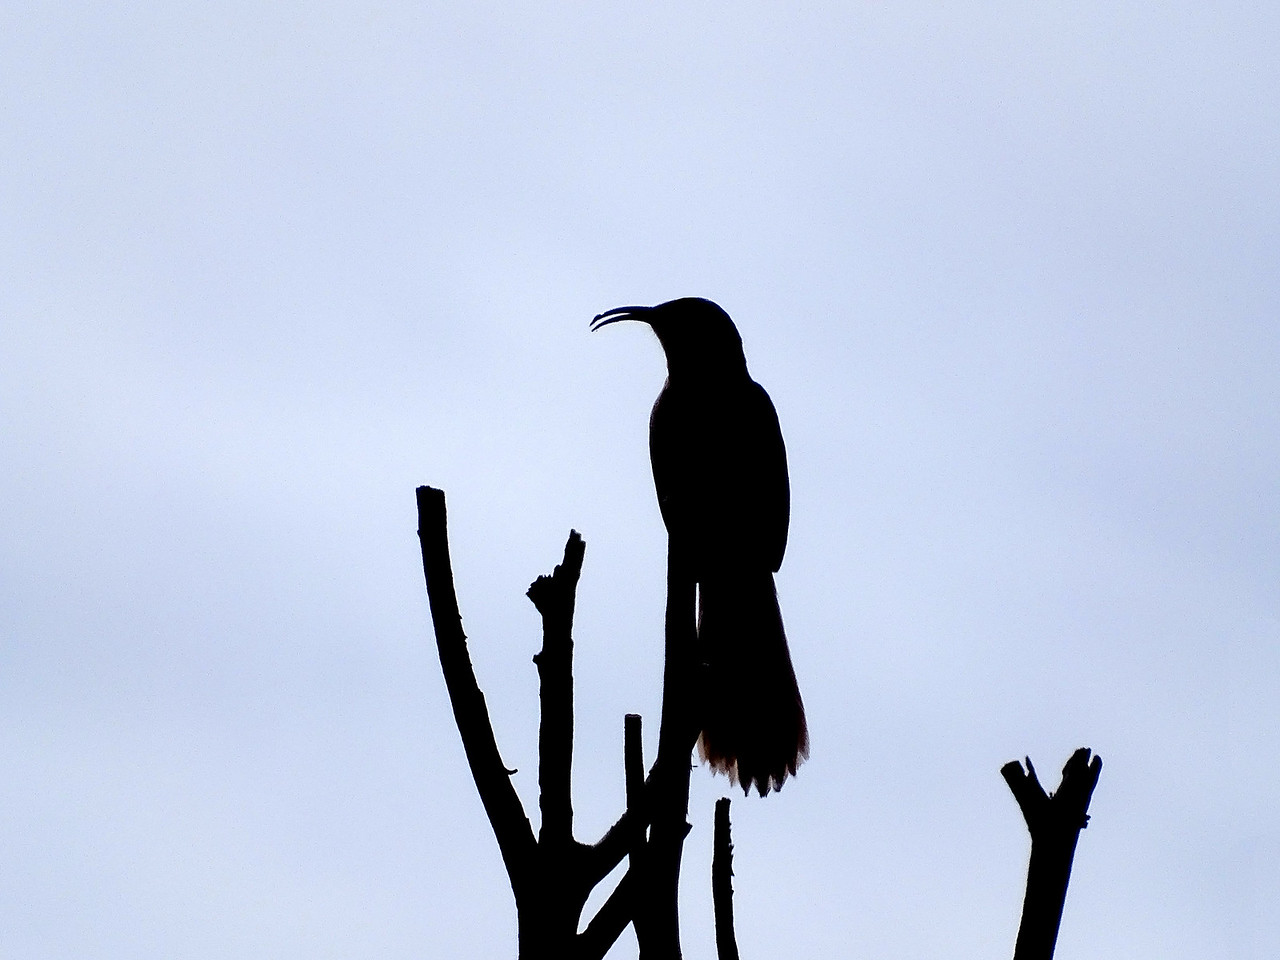 Silhouette of a Crissal Thrasher with its curved bill